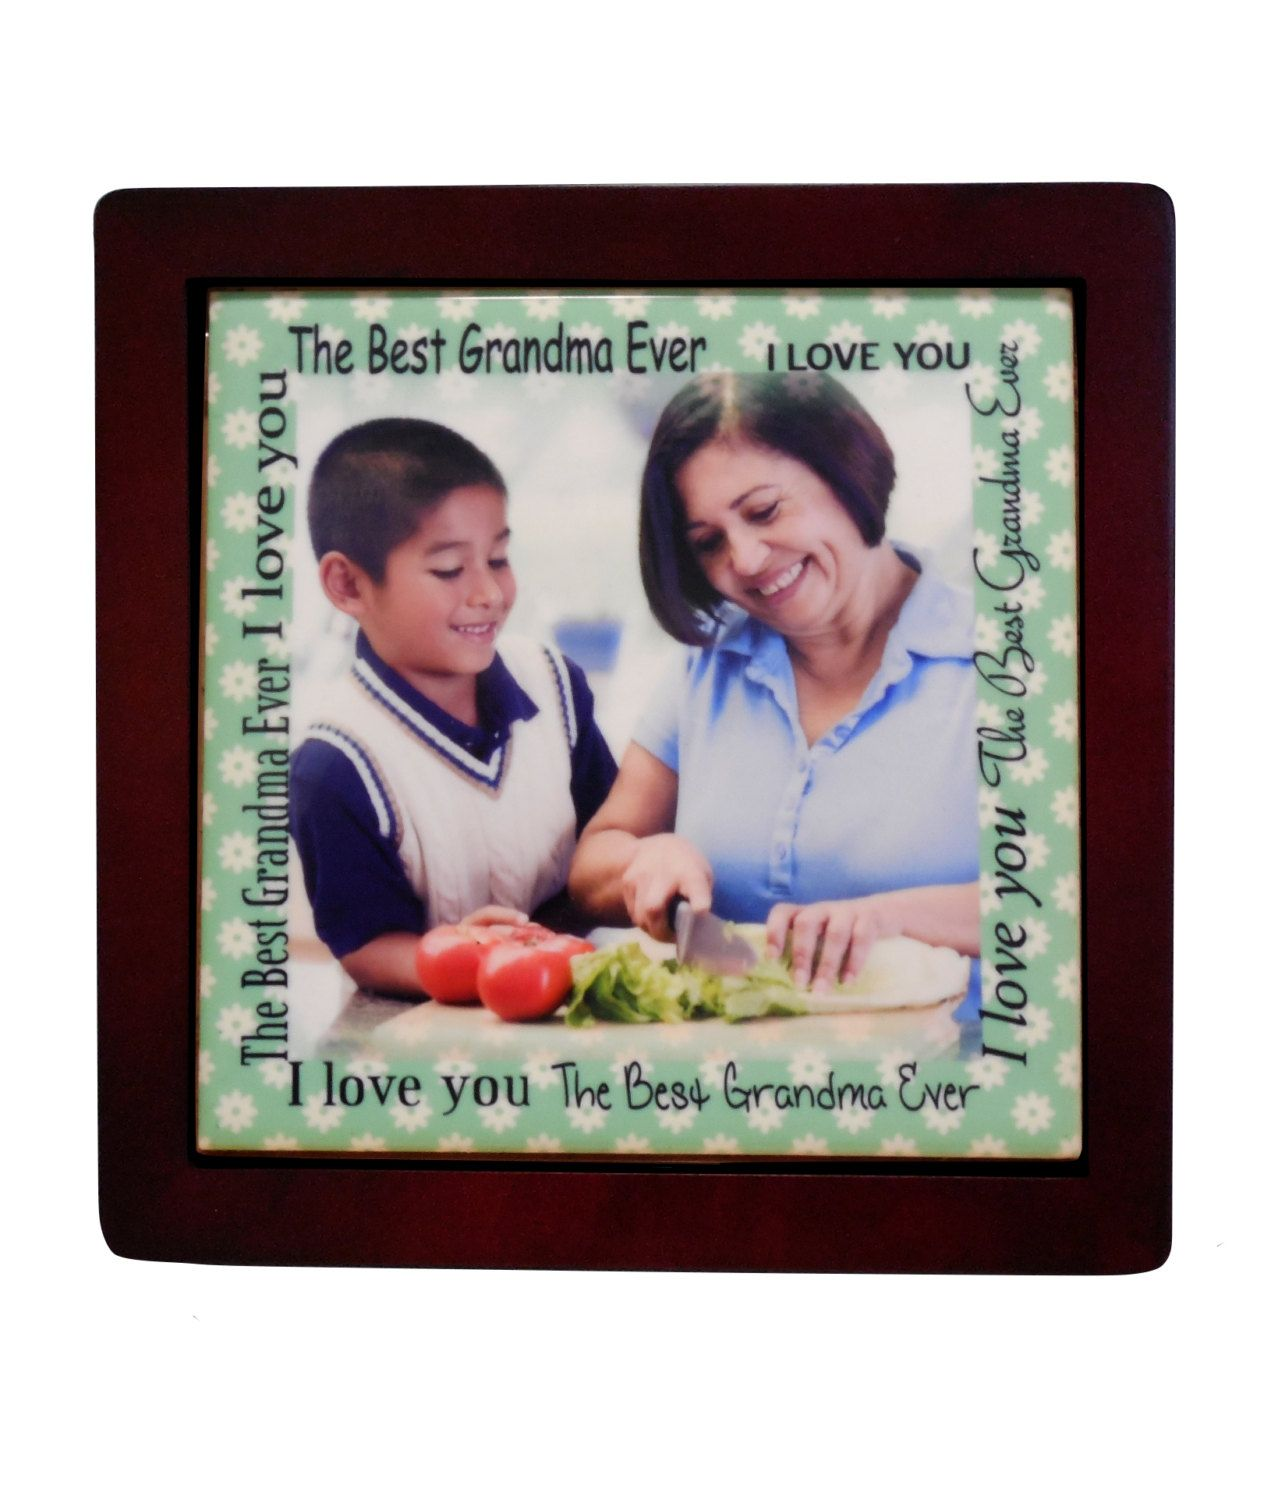 Personalized grandma photo tilepicture frames displays personalized grandma photo tilepicture frames displays sublimated ceramic tile grandma birthday gifts dailygadgetfo Gallery